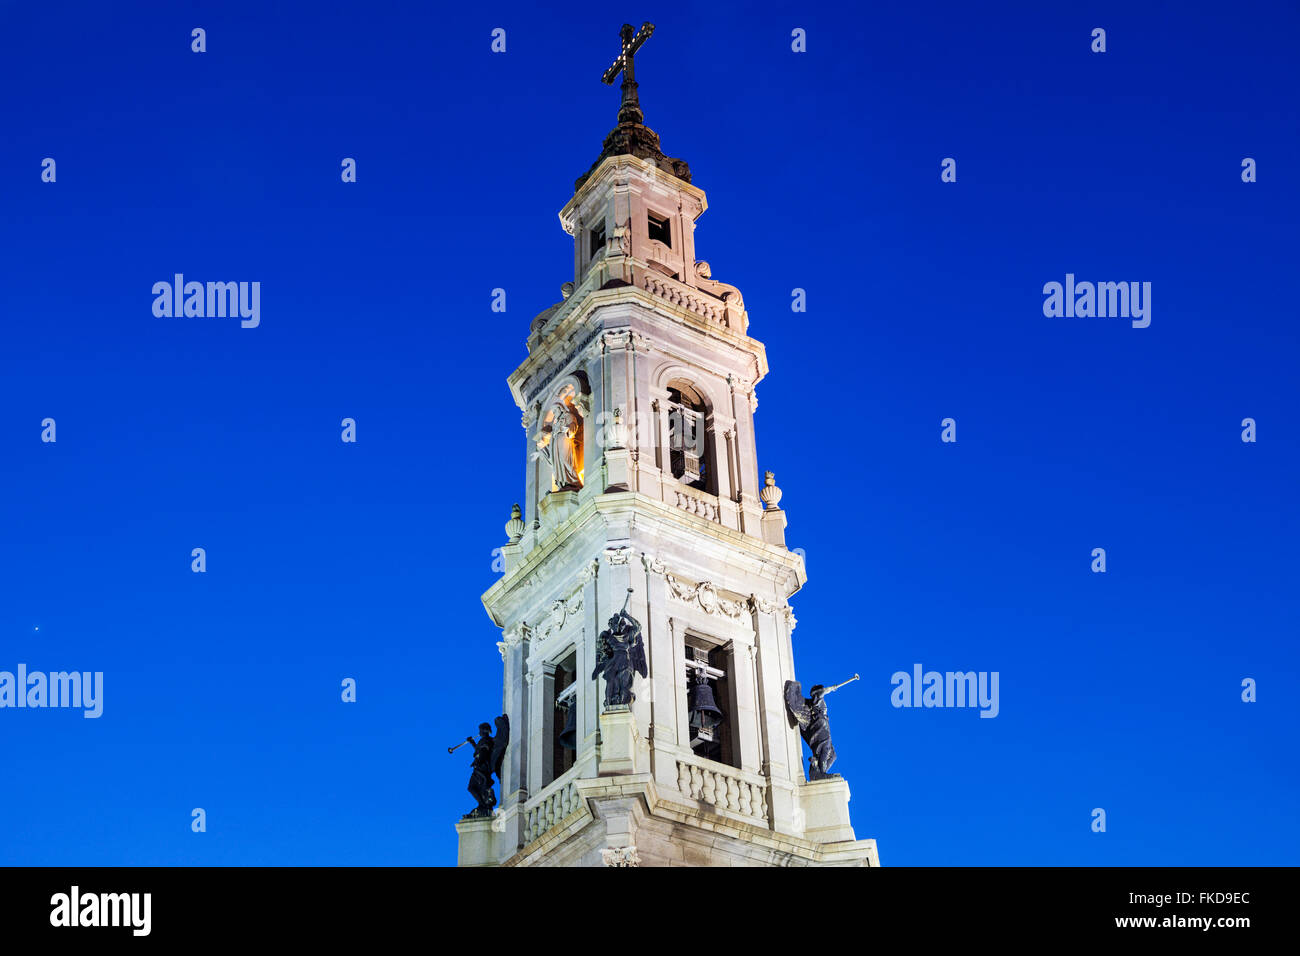 Bell tower of Pontifical Shrine of Blessed Virgin of Rosary at night - Stock Image